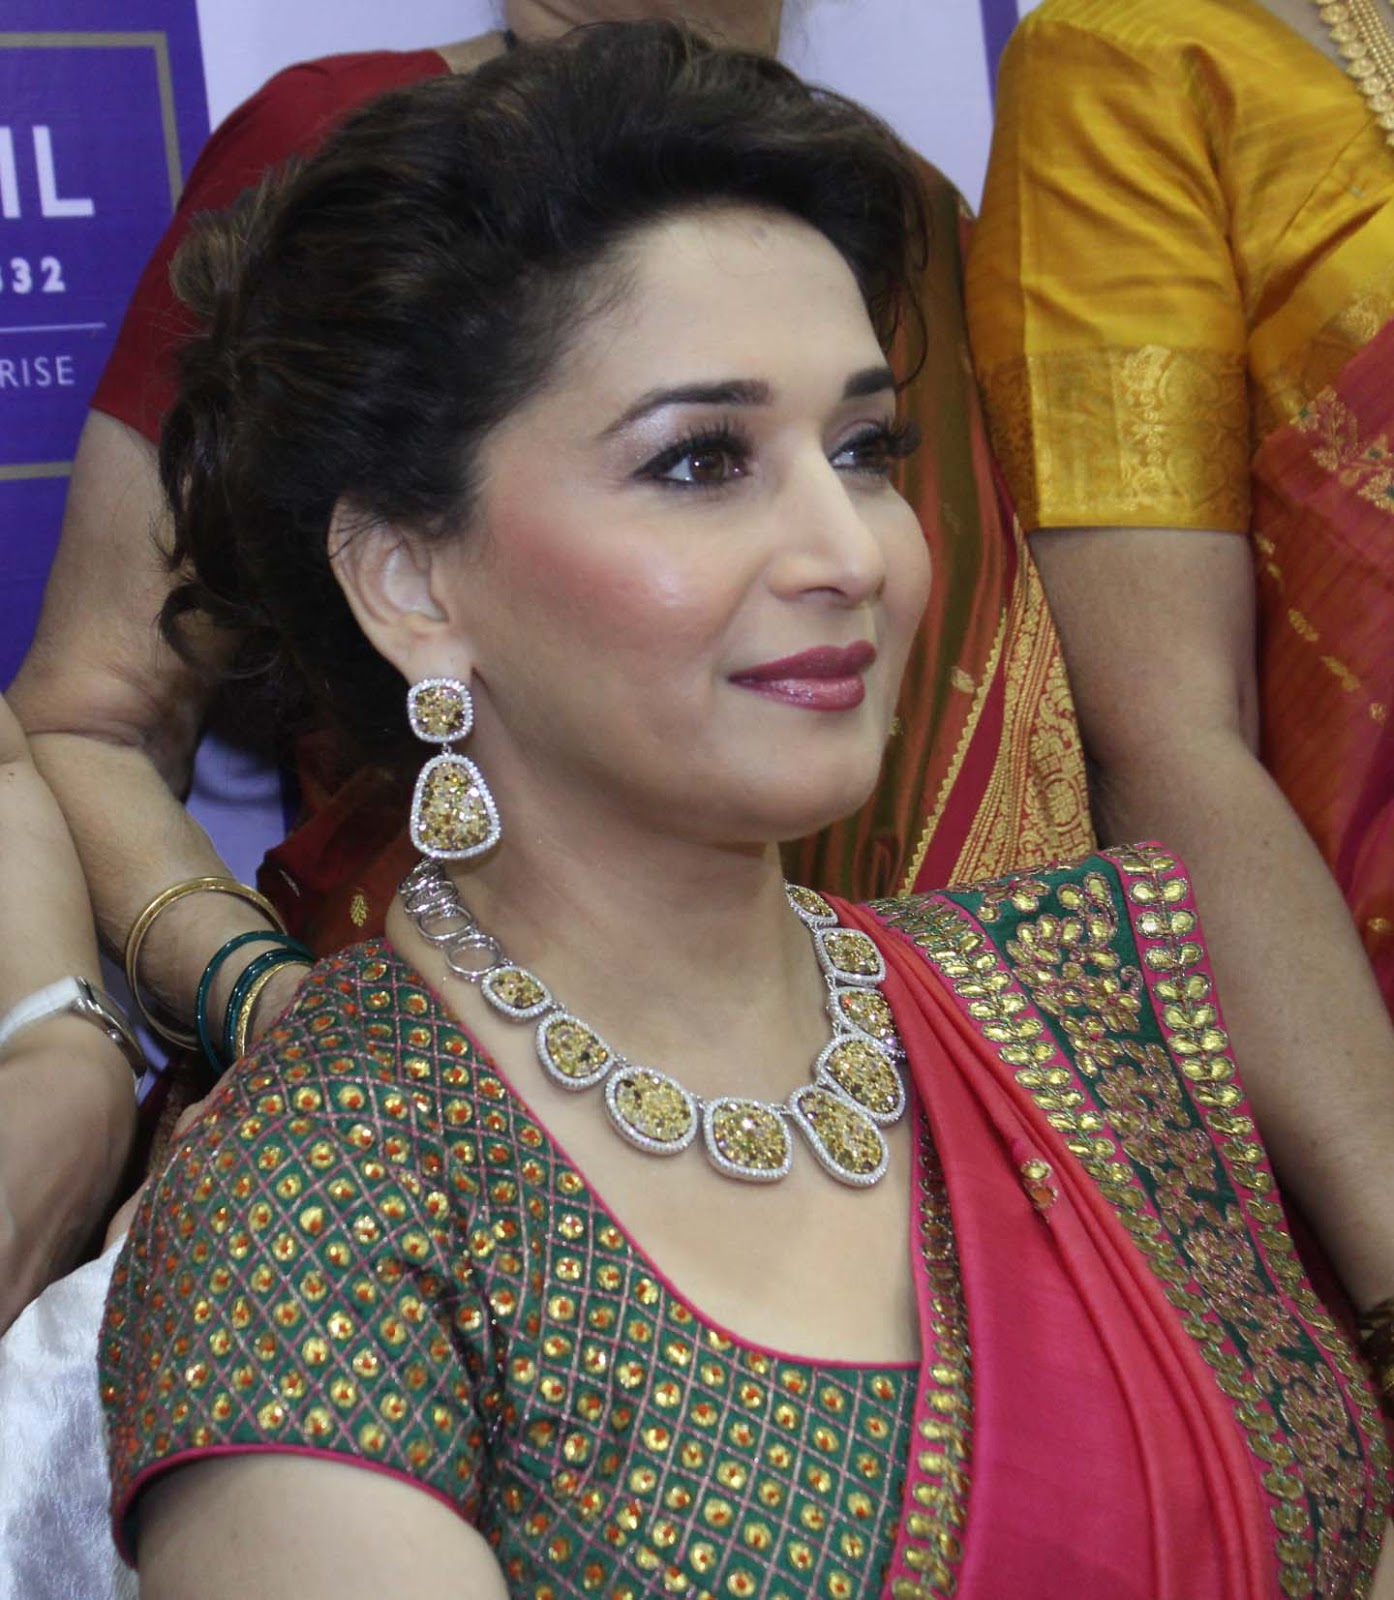 Madhuri Dixit High Definition Photos In Saree - Trionic 88 -4087